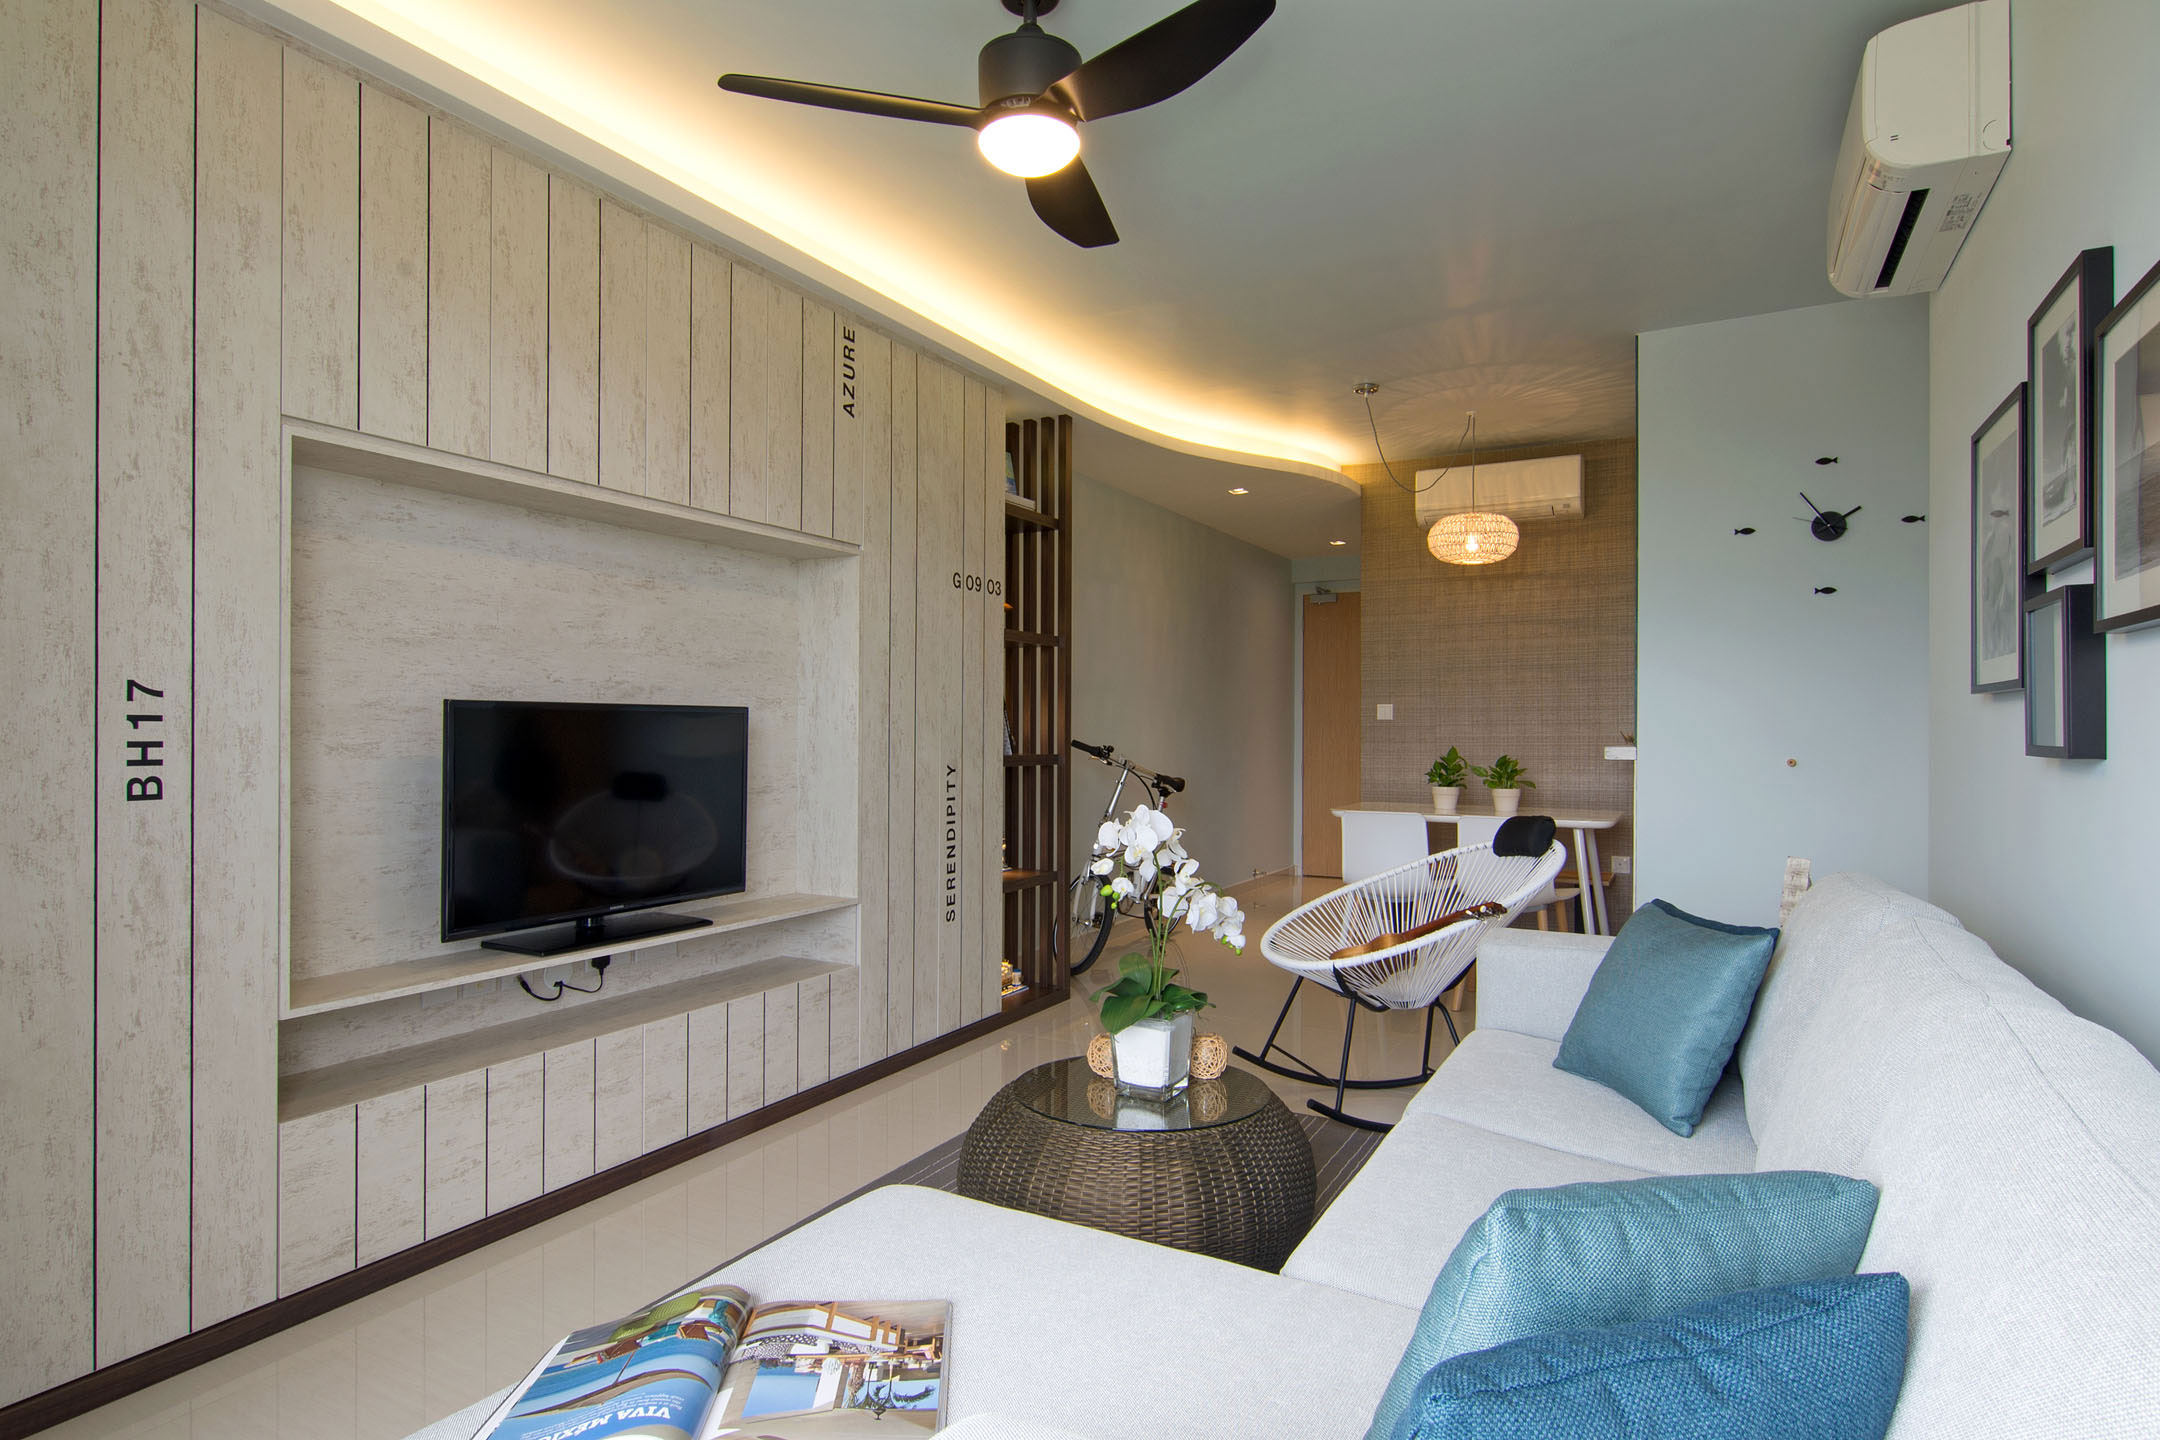 Beach house urban apartment in Singapore by Vievva Designers-09